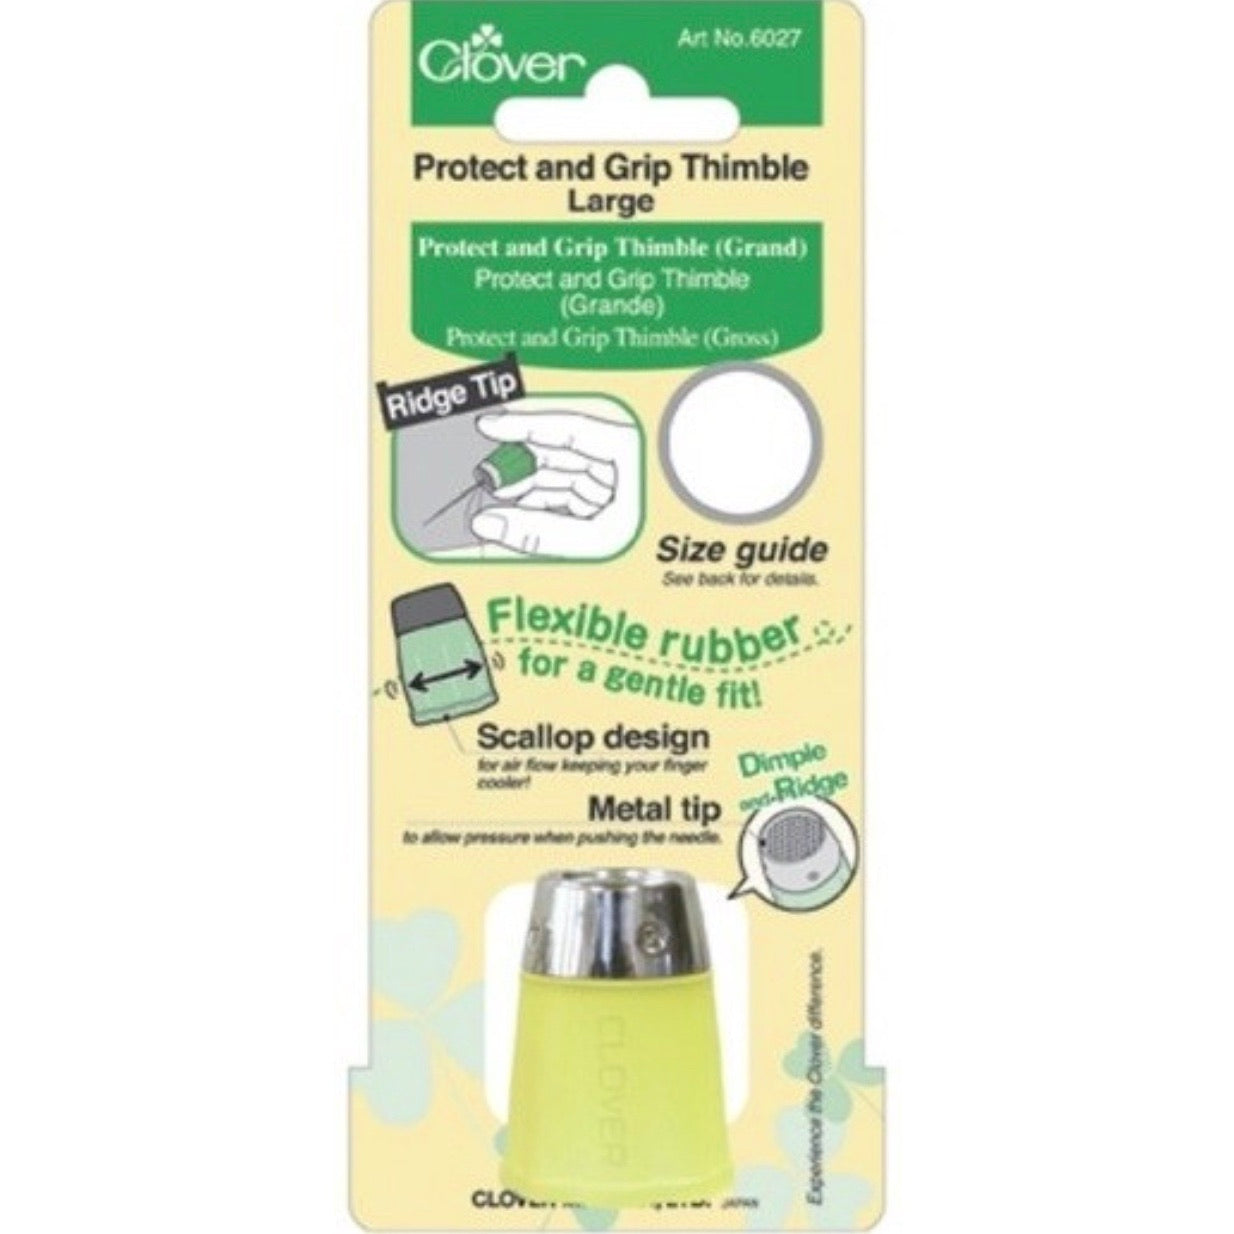 Grip and Protect Thimble - Large